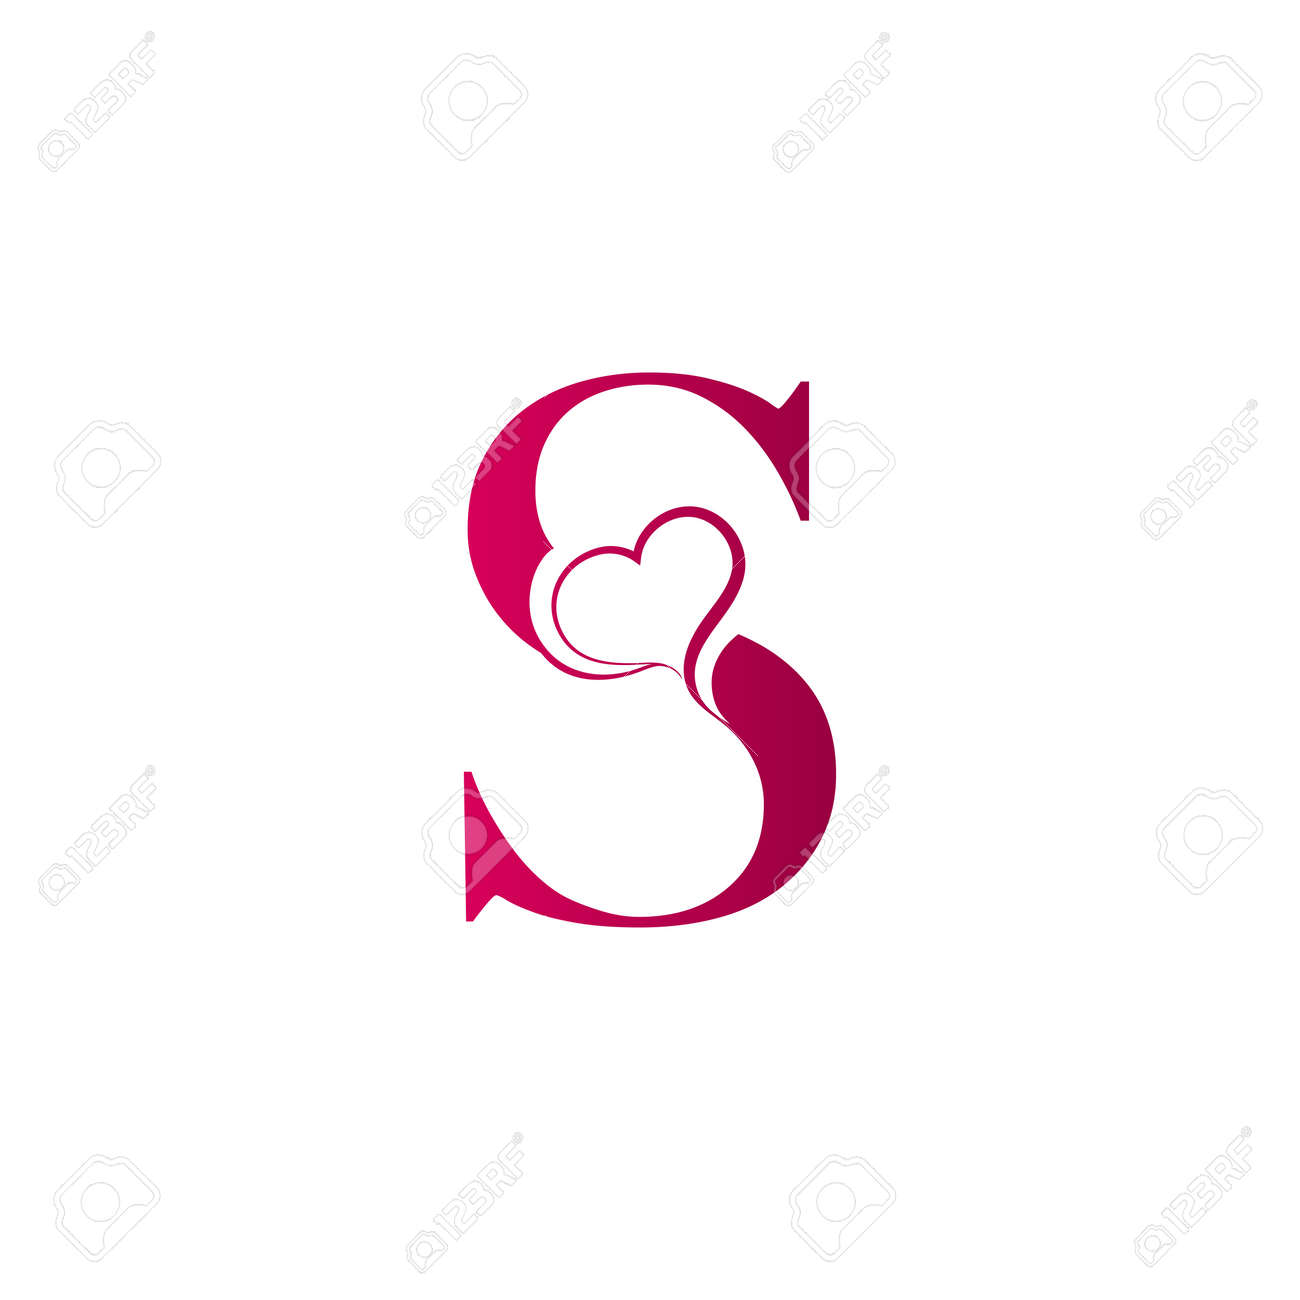 S Letter Logo With Heart Icon Valentines Day Concept Royalty Free